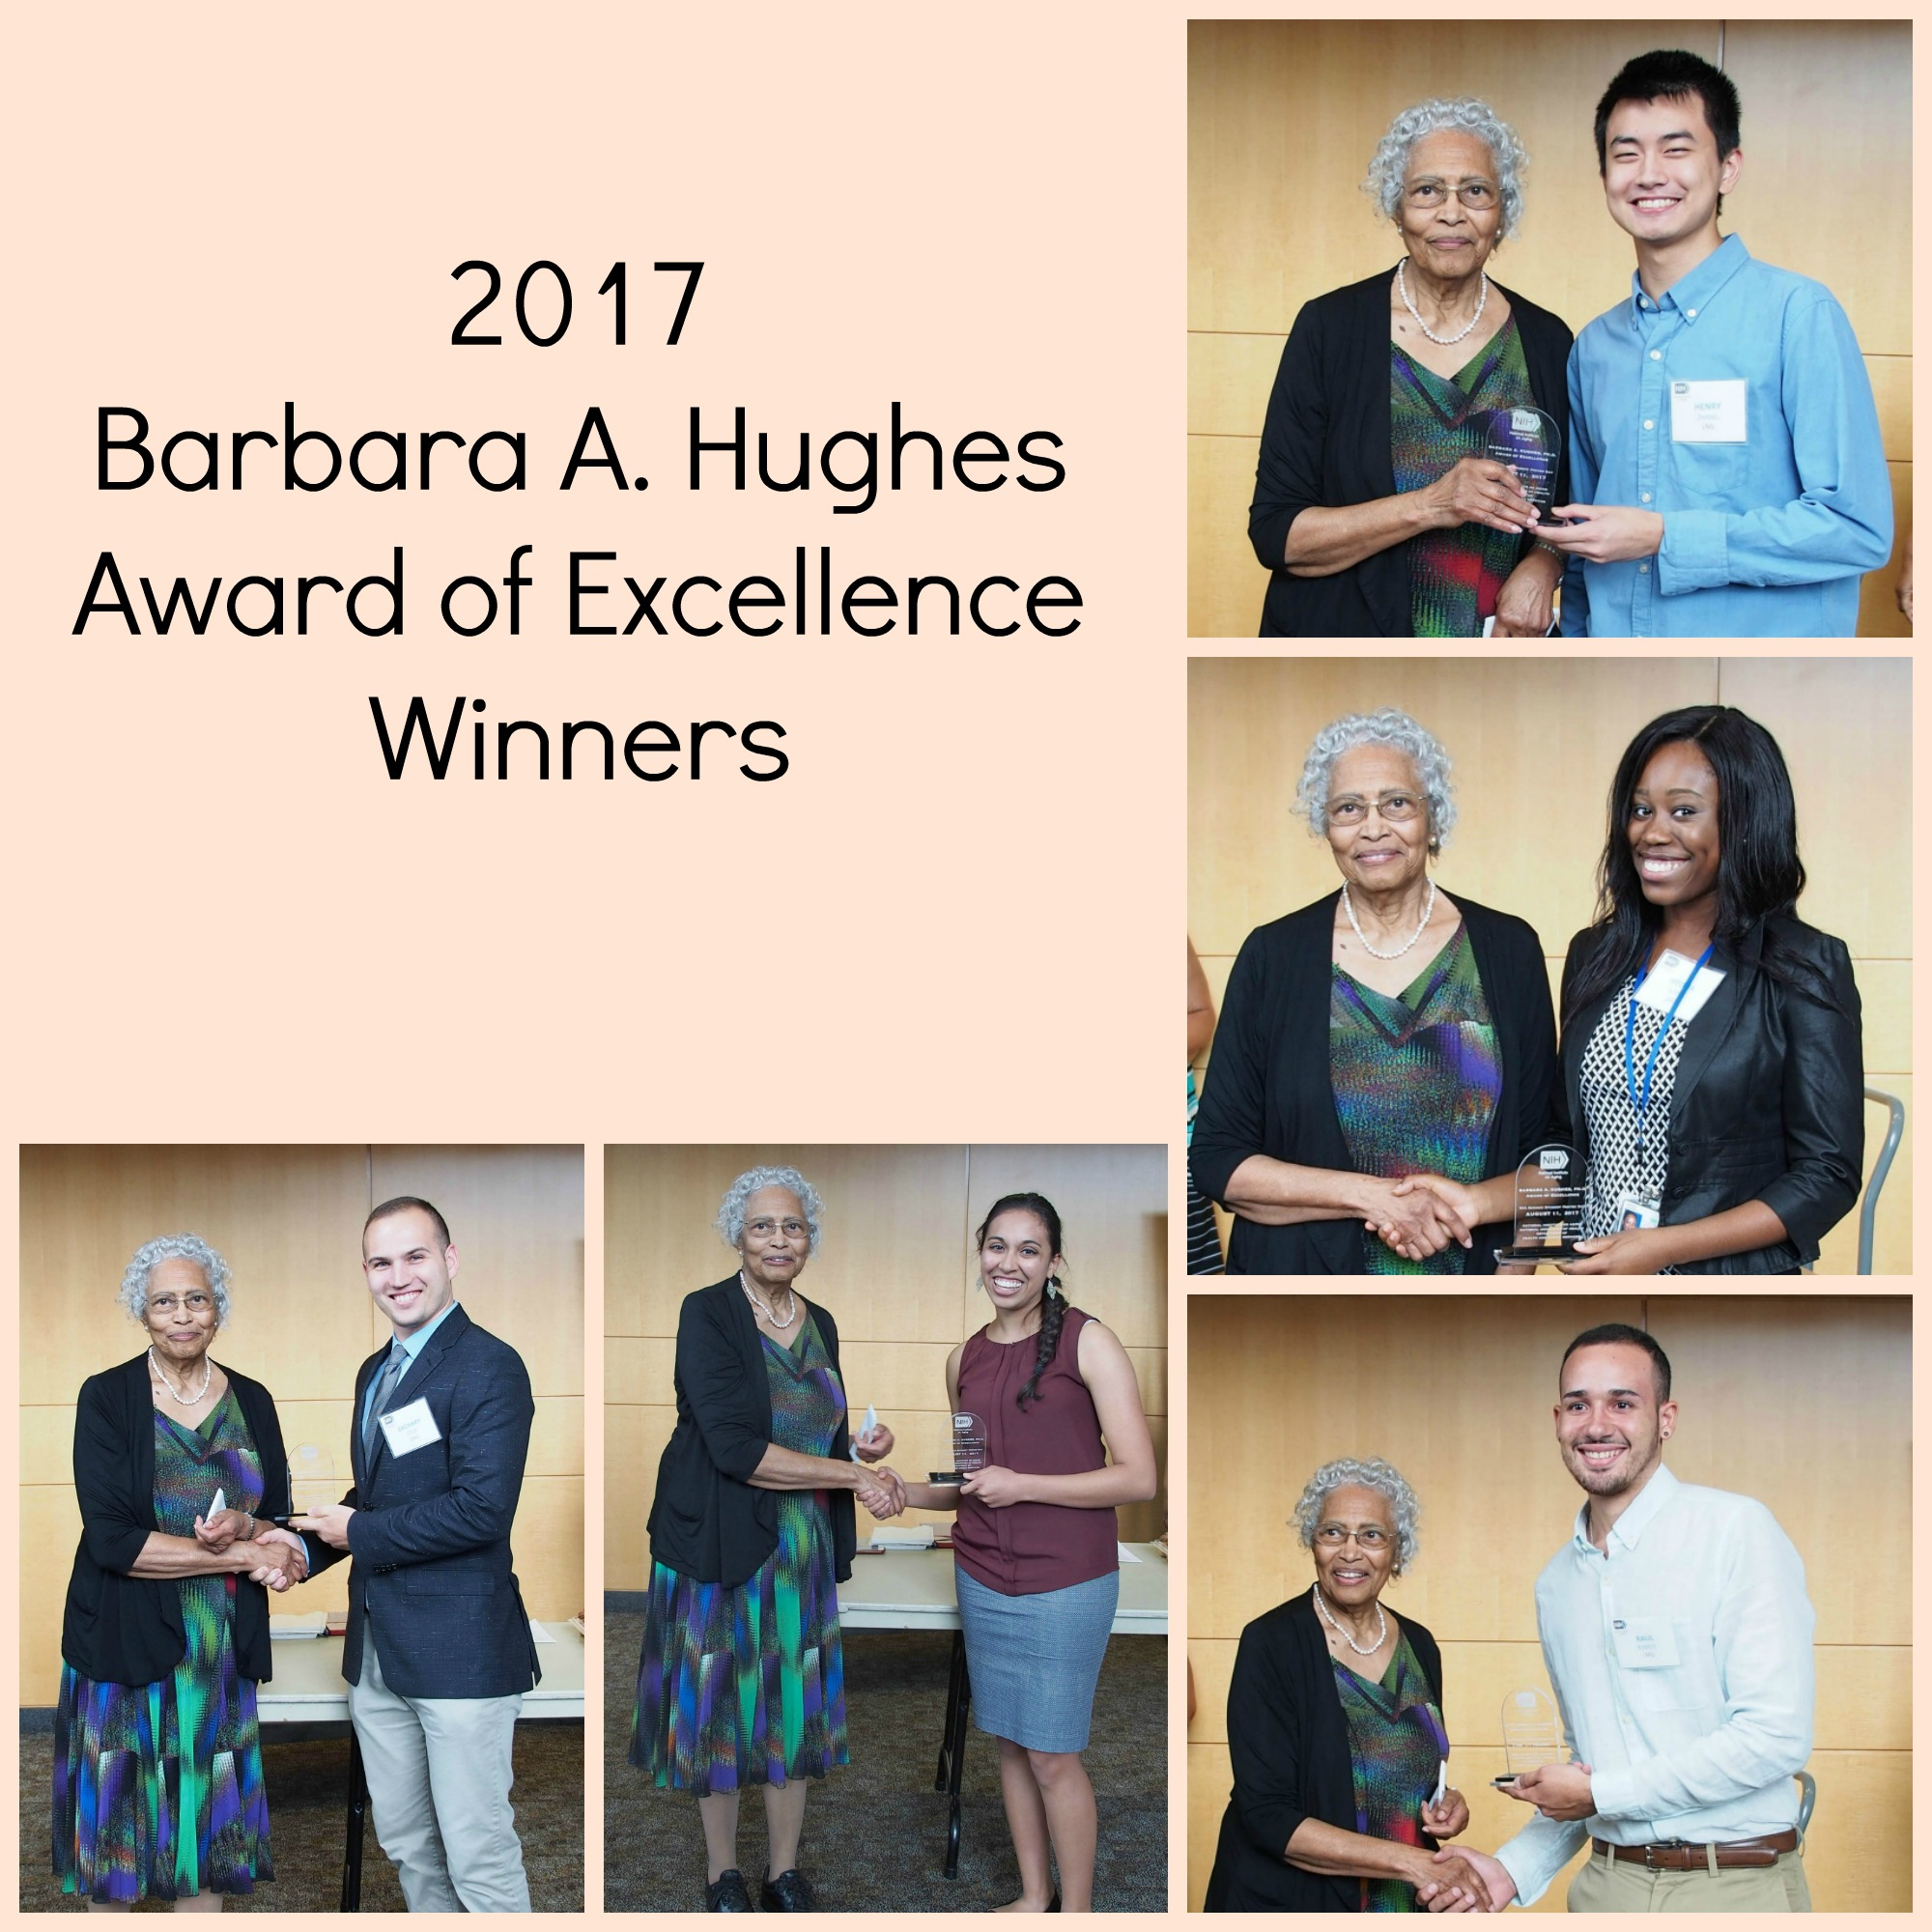 Dr. Hughes poses with this year's Barbara A. Hughes Award of Excellence winners: Ifeoma J. Azinge, Zachary Cook, Raul Y. Ramos Sanchez, Tara N. Srinivas, and Henry Zhang